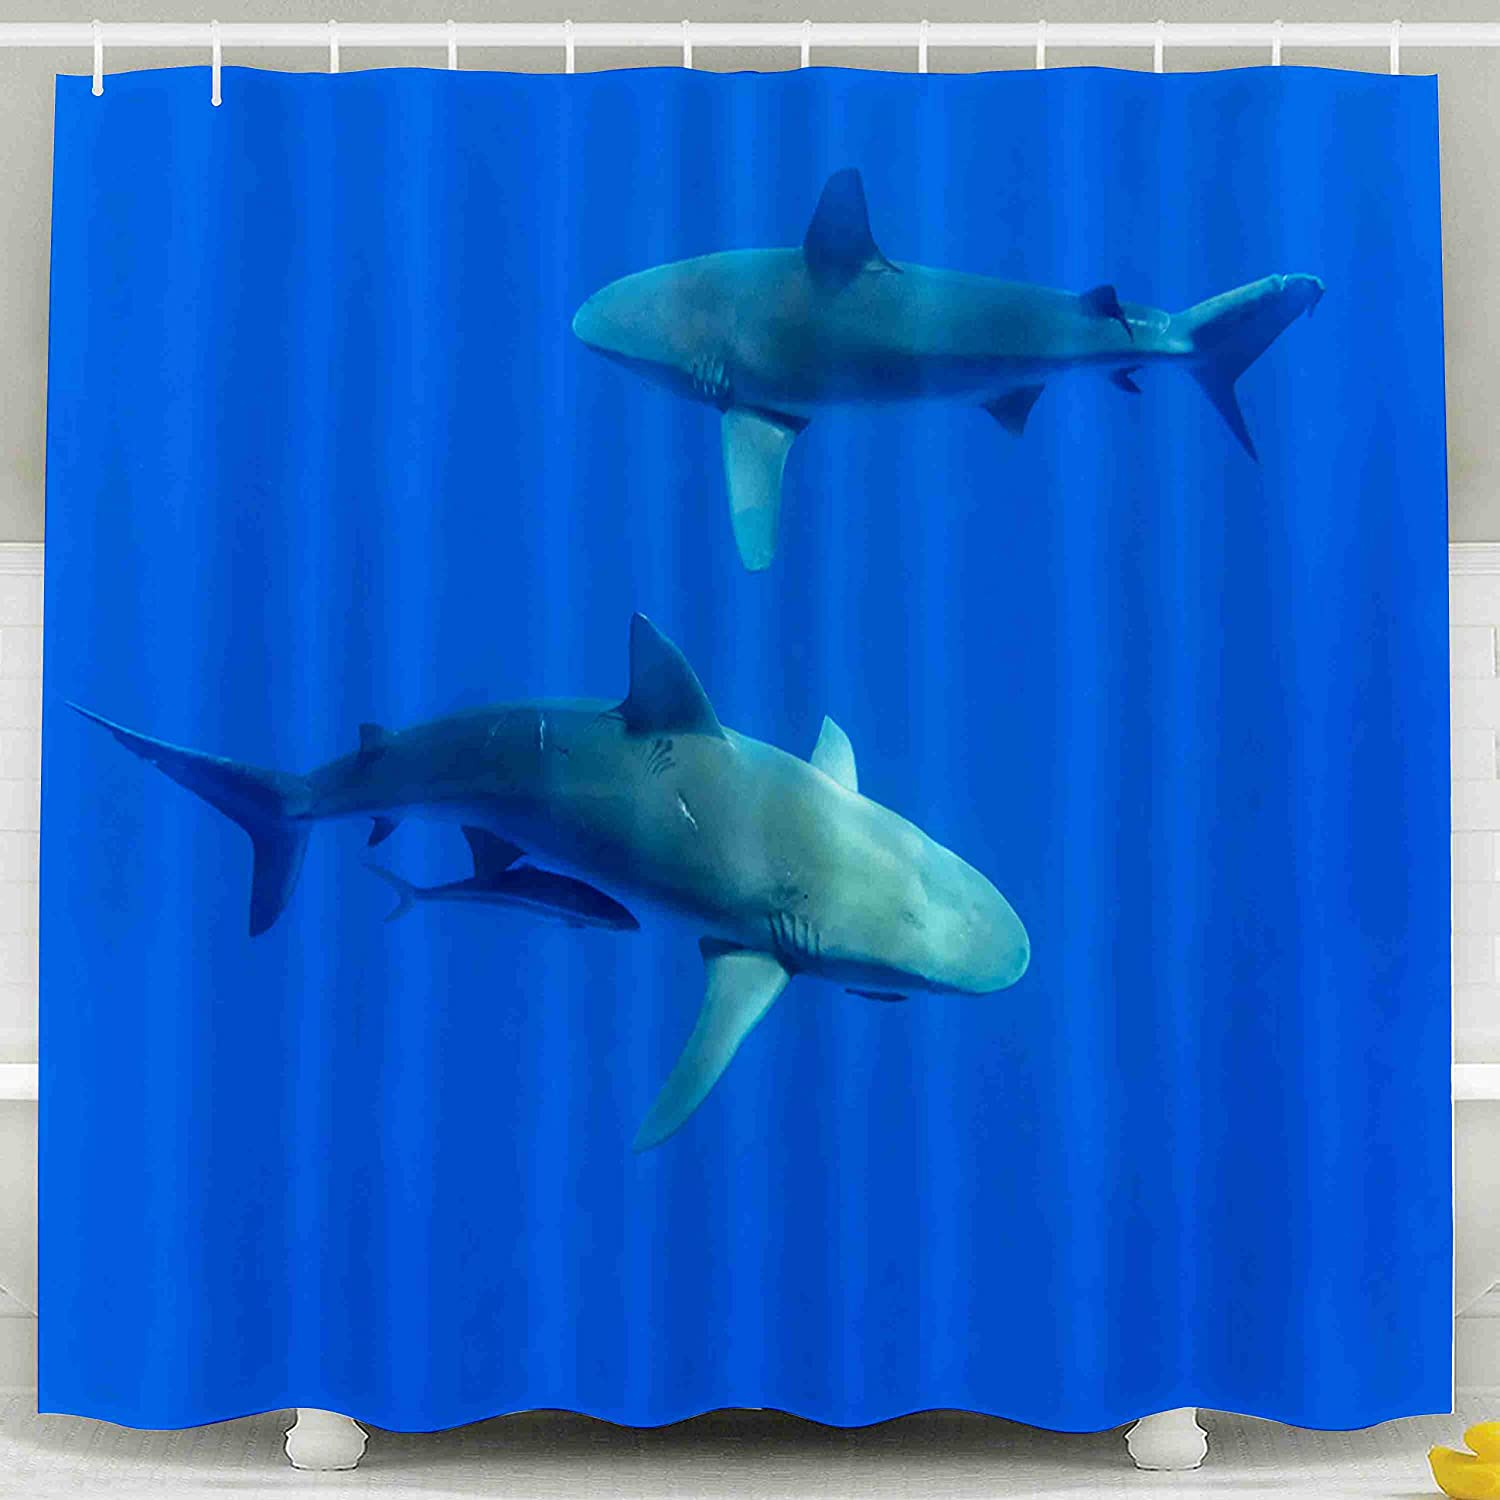 Tooperue Shower Curtain for Bathroom with Hooks Sharks Hawaii Oahu 78×72 Inch,Eco-Friendly,No Oder,Waterproof,Red Orange